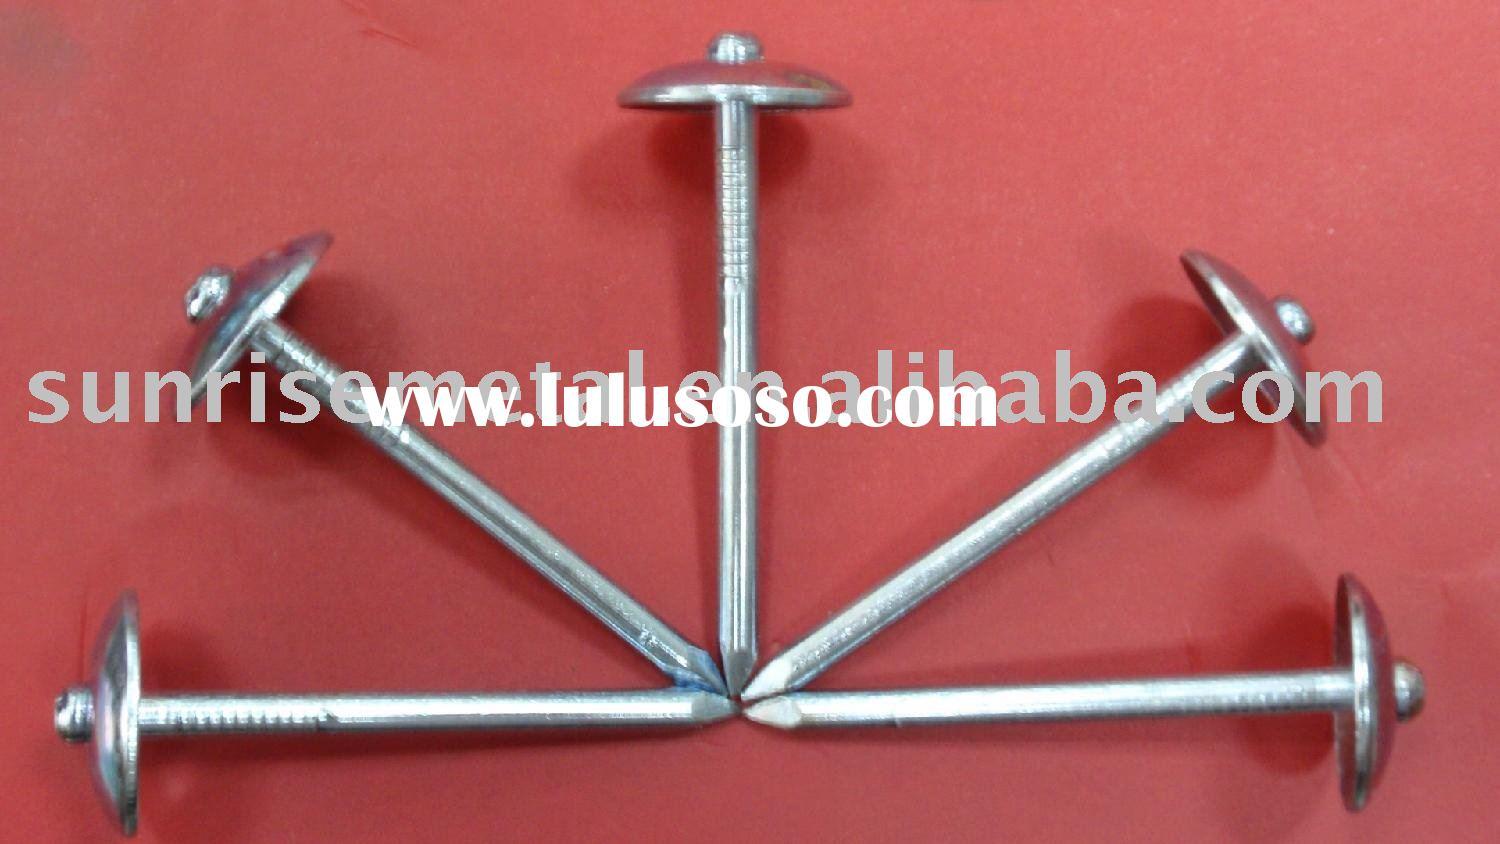 Roofing nails/ umbrella head roofing nails